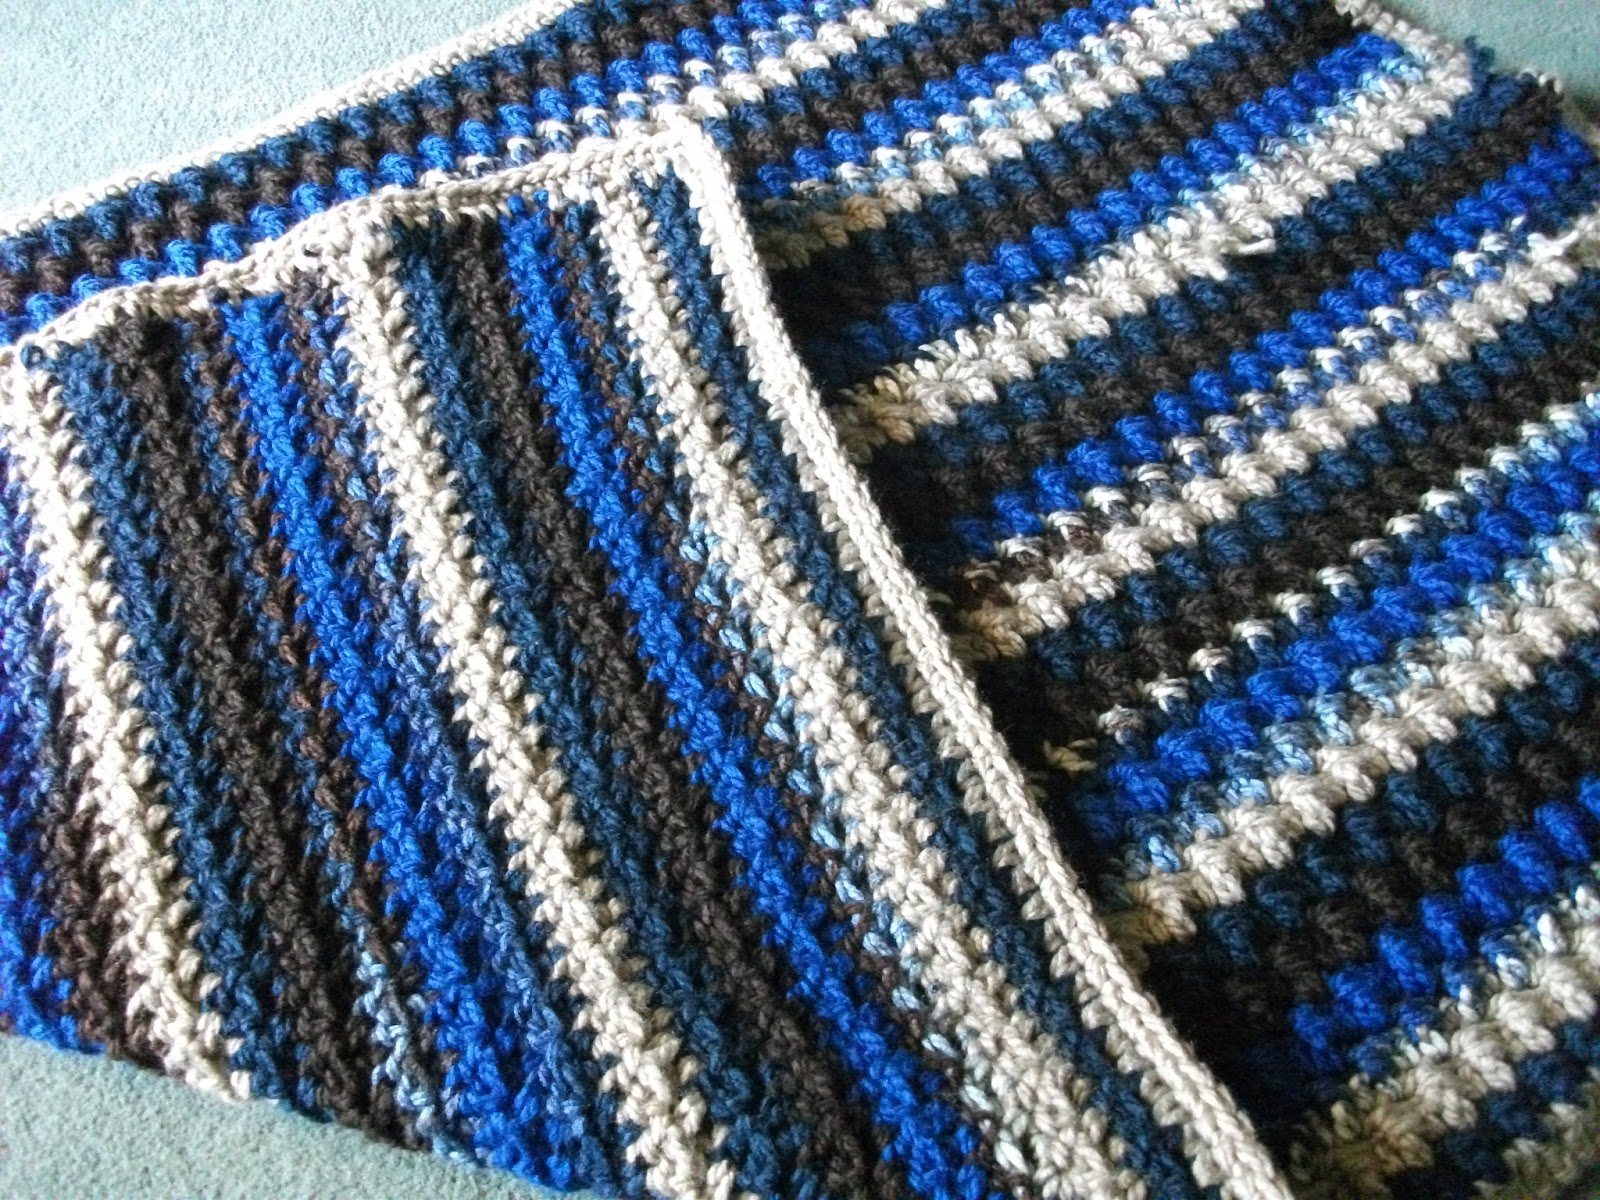 Crochet Patterns Loops And Thread Yarn : YarnSkeink: Front Post Double Crochet Afghan